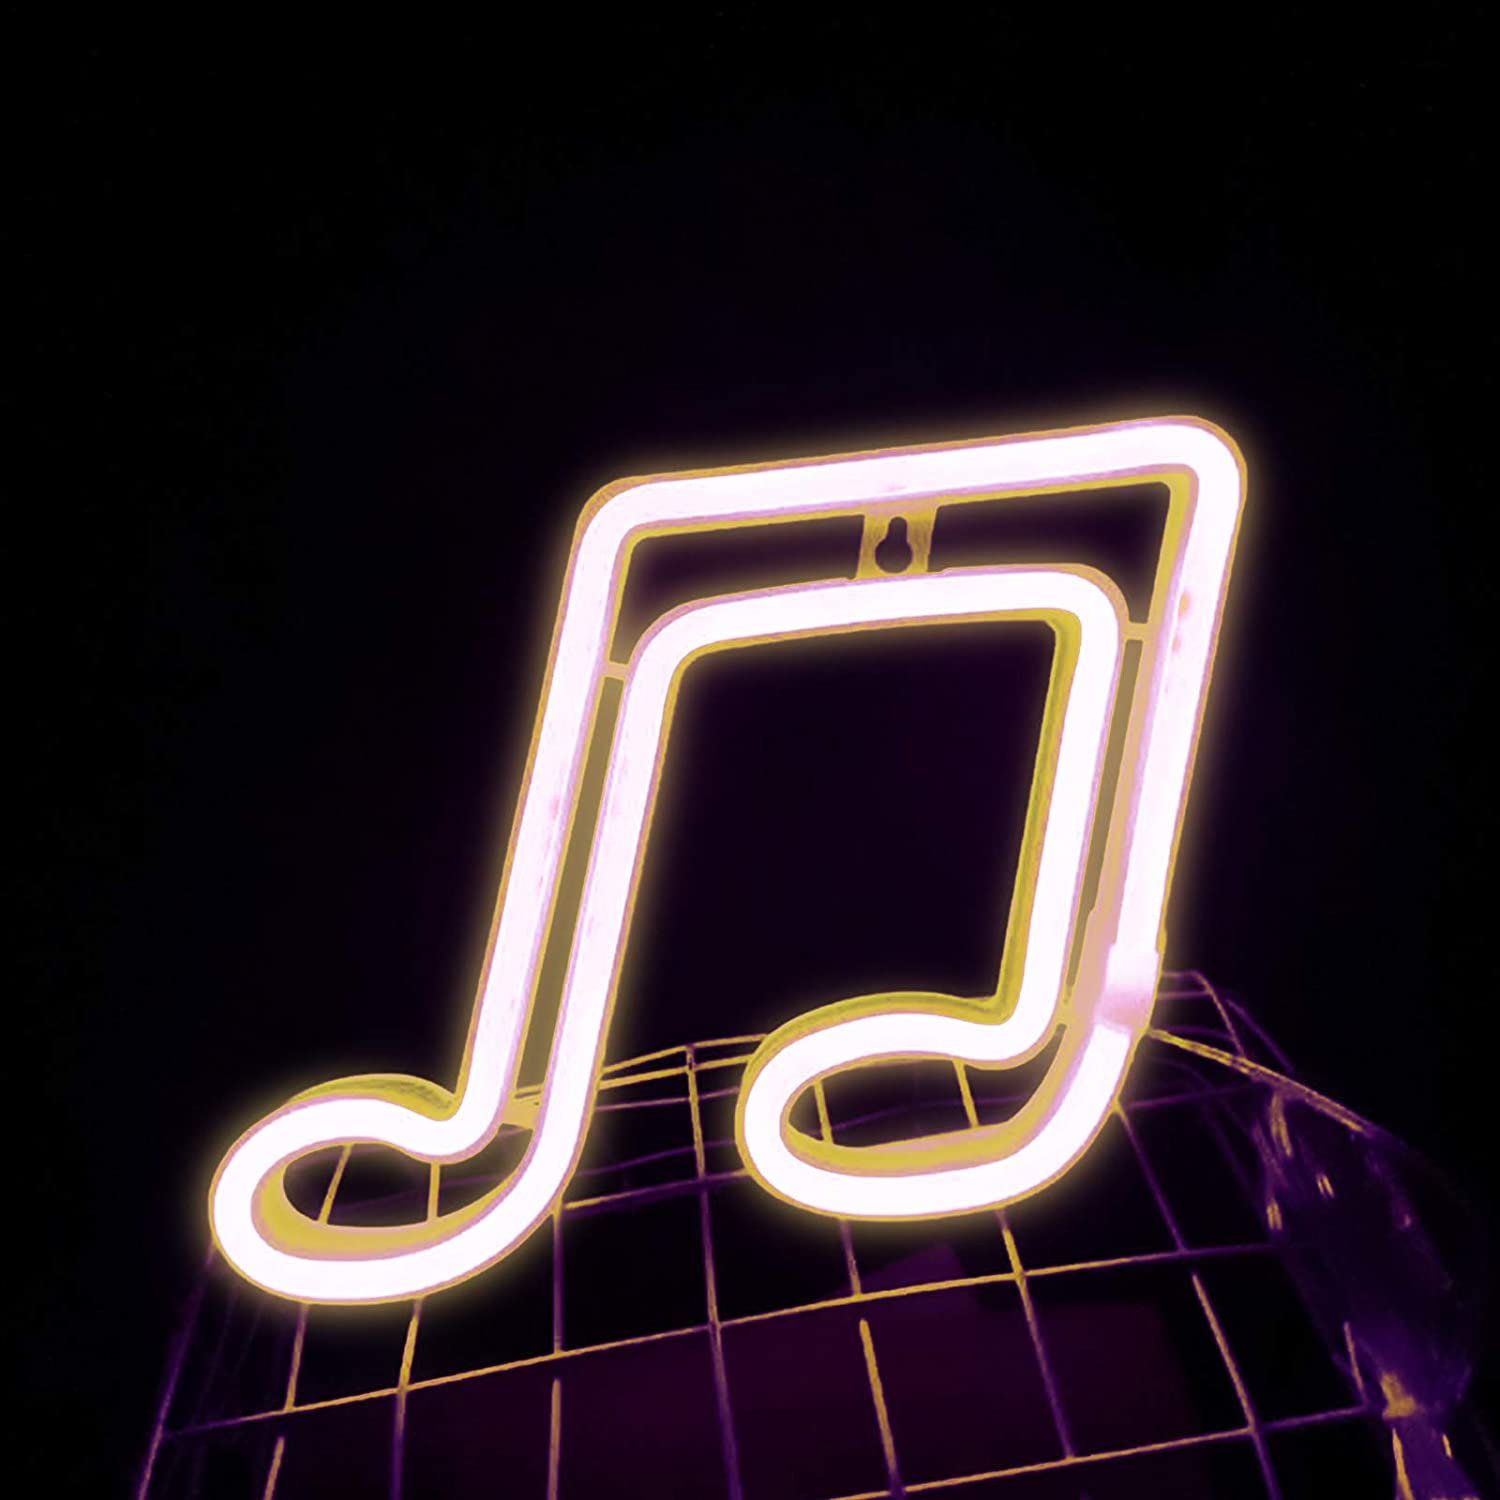 Music Note LED Neon Light Signs, Musical Note Shaped Neon Signs Wall USB/Battery Hanging Night Light for Bedroom Wall Decor, Kids Room, Restaurant, Party, Bar, Gift (Yellow-Music Note)